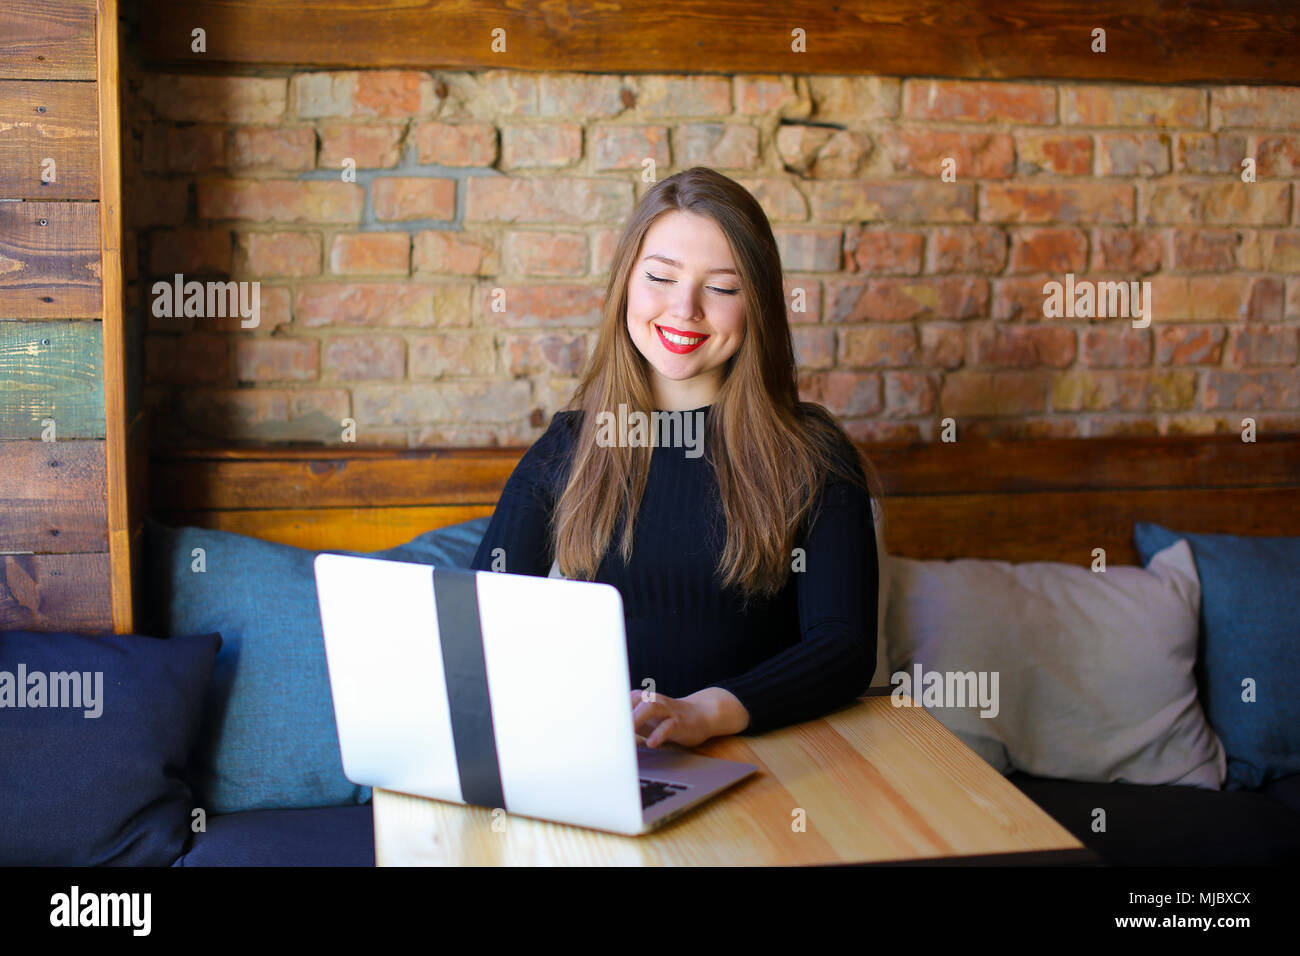 Pretty girl with red lips using laptop at cafe. - Stock Image